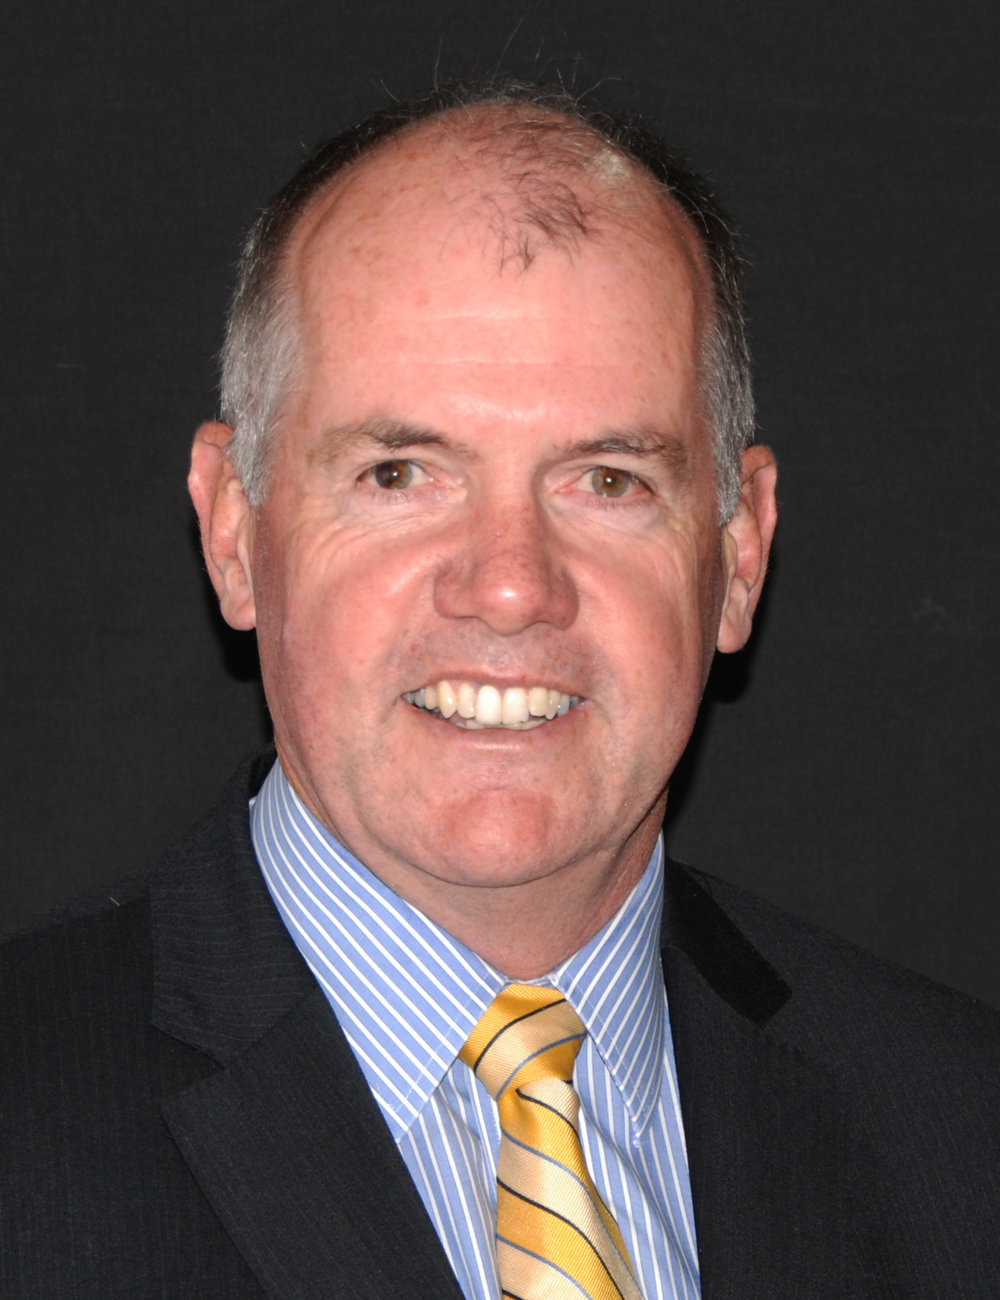 Mick Keogh - Board Director